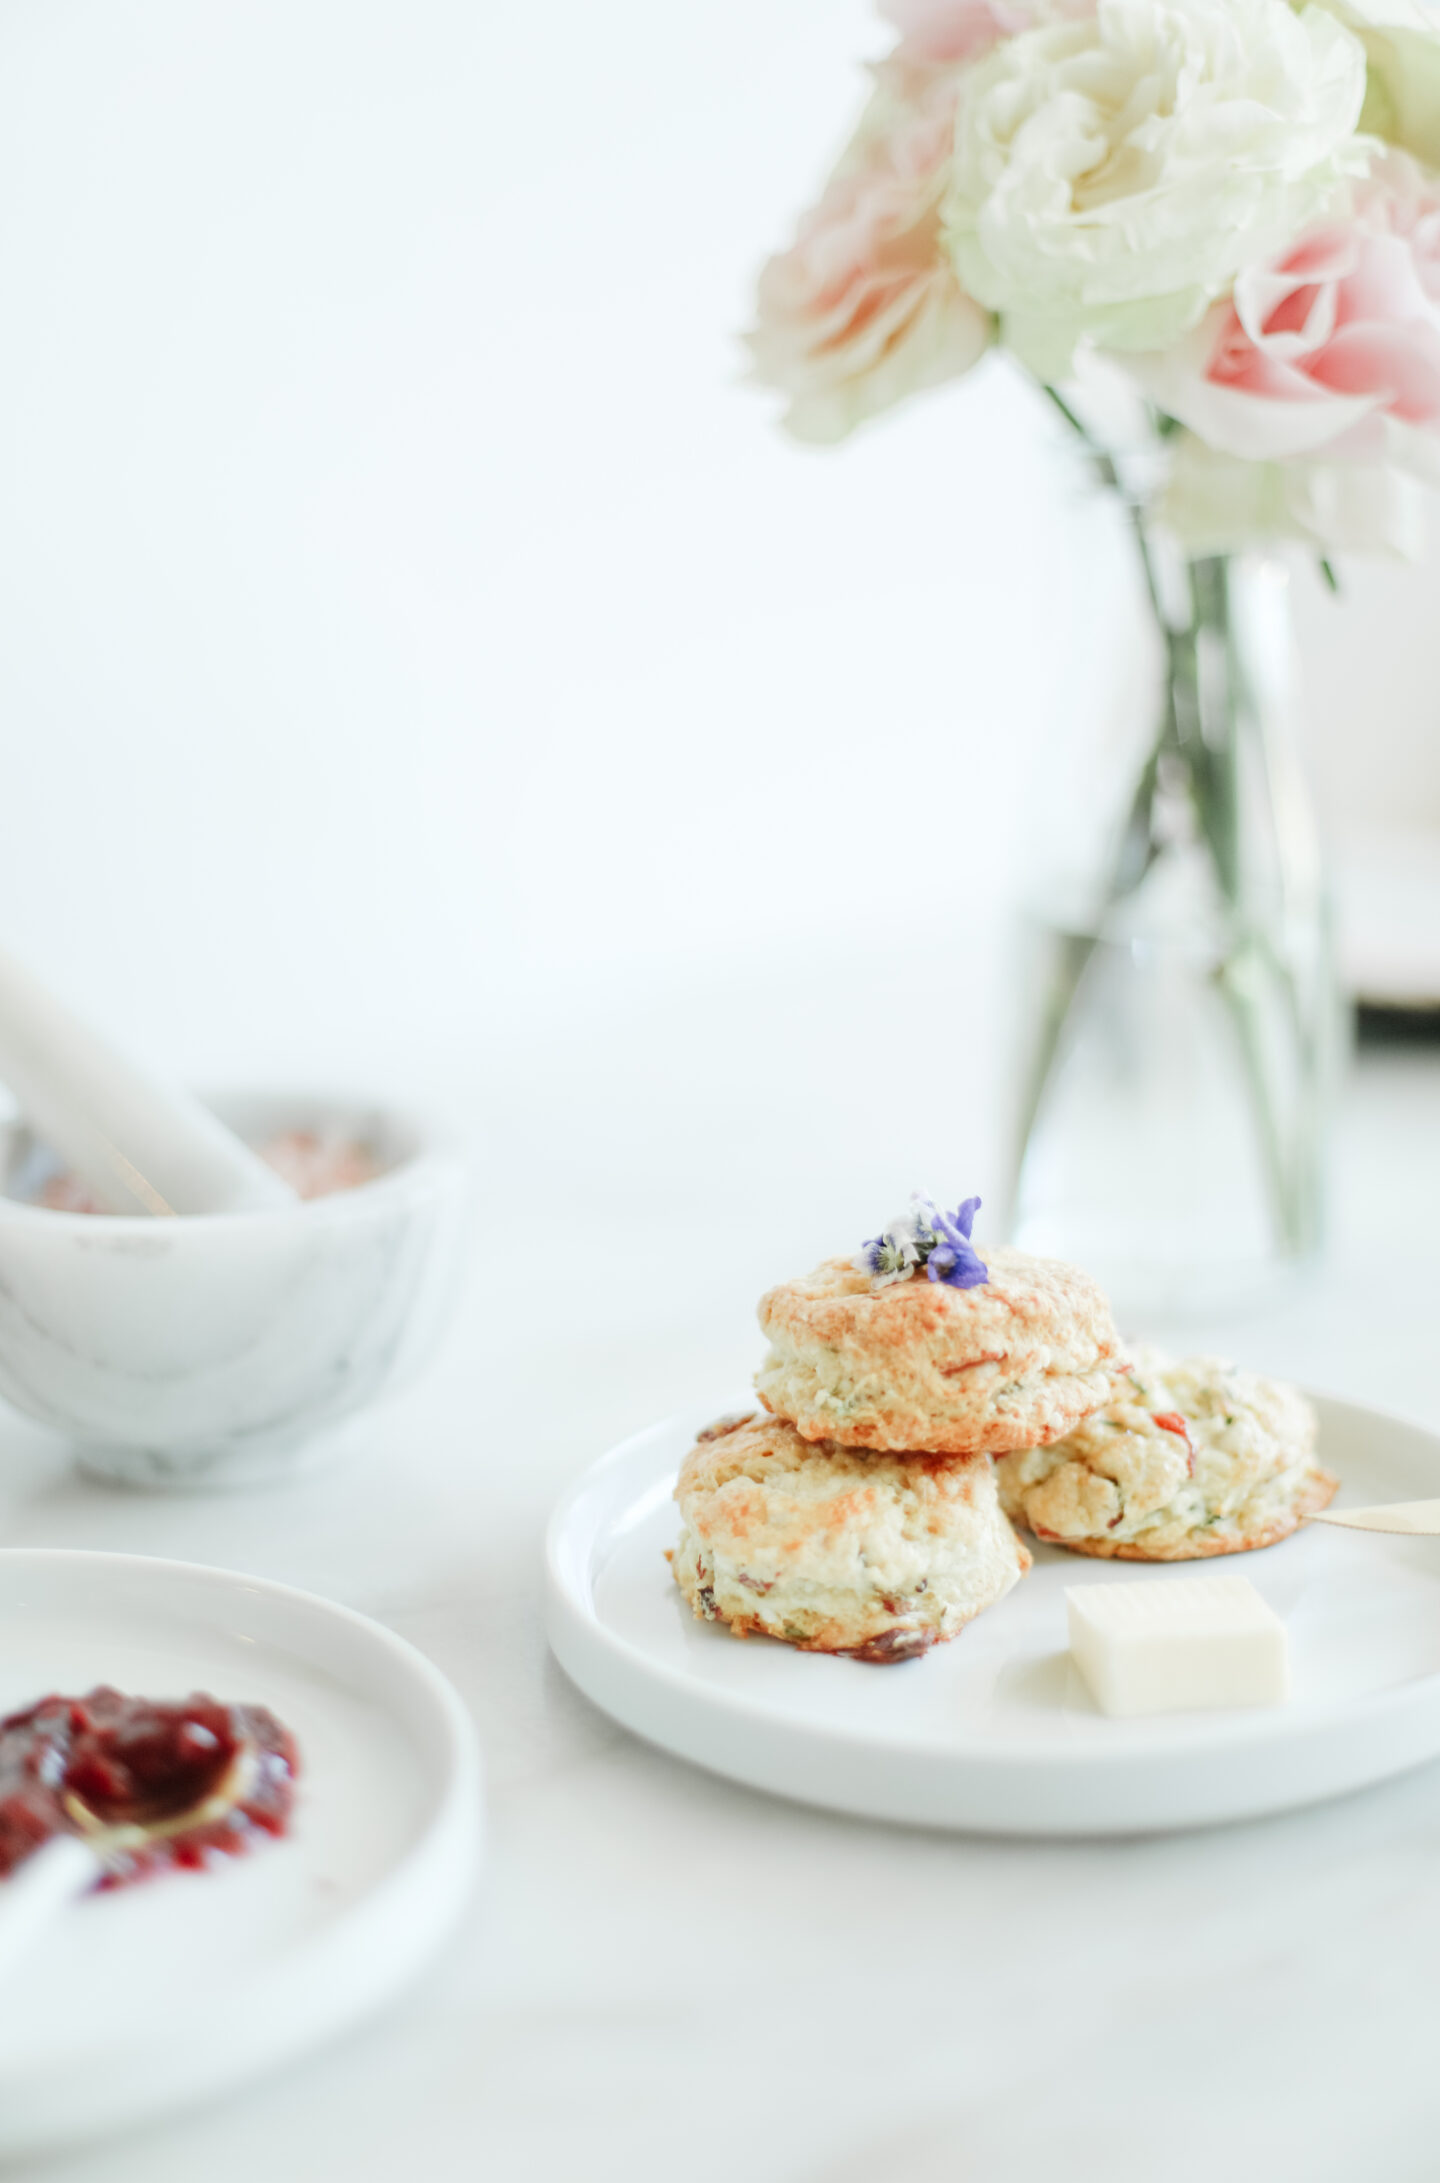 Savory scones: Feta and bacon